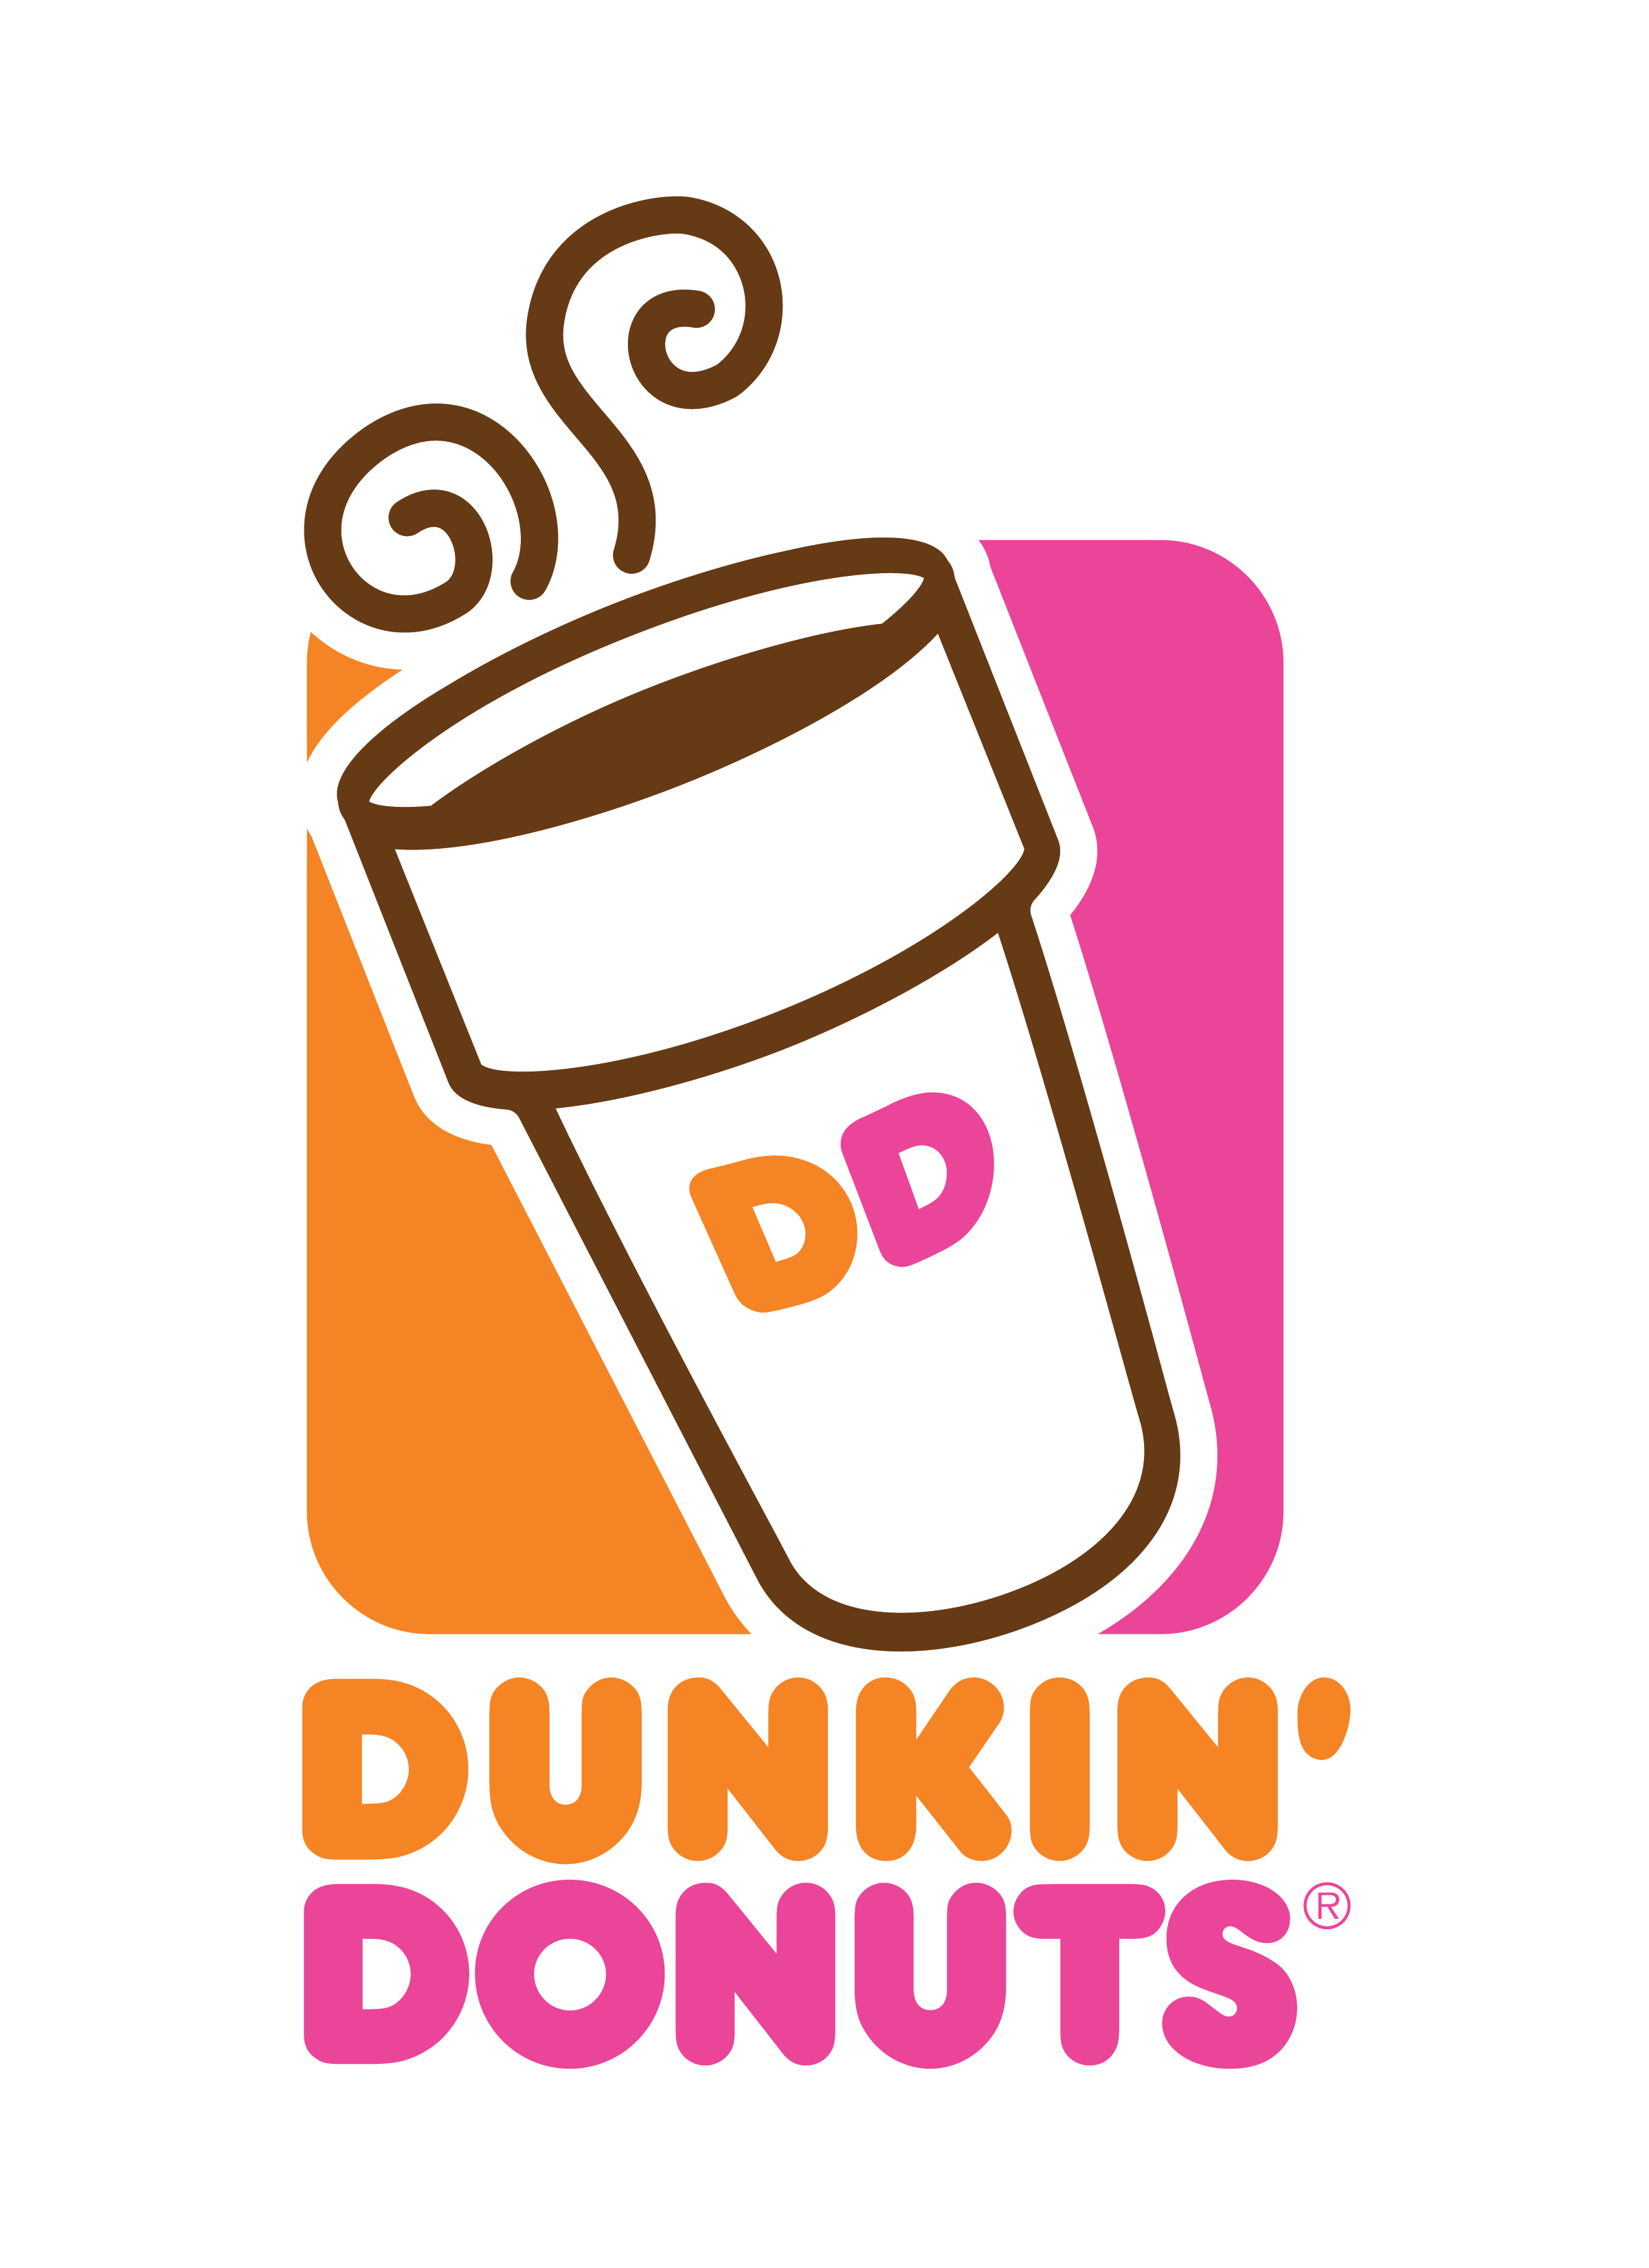 dunkin donuts png logo #3110